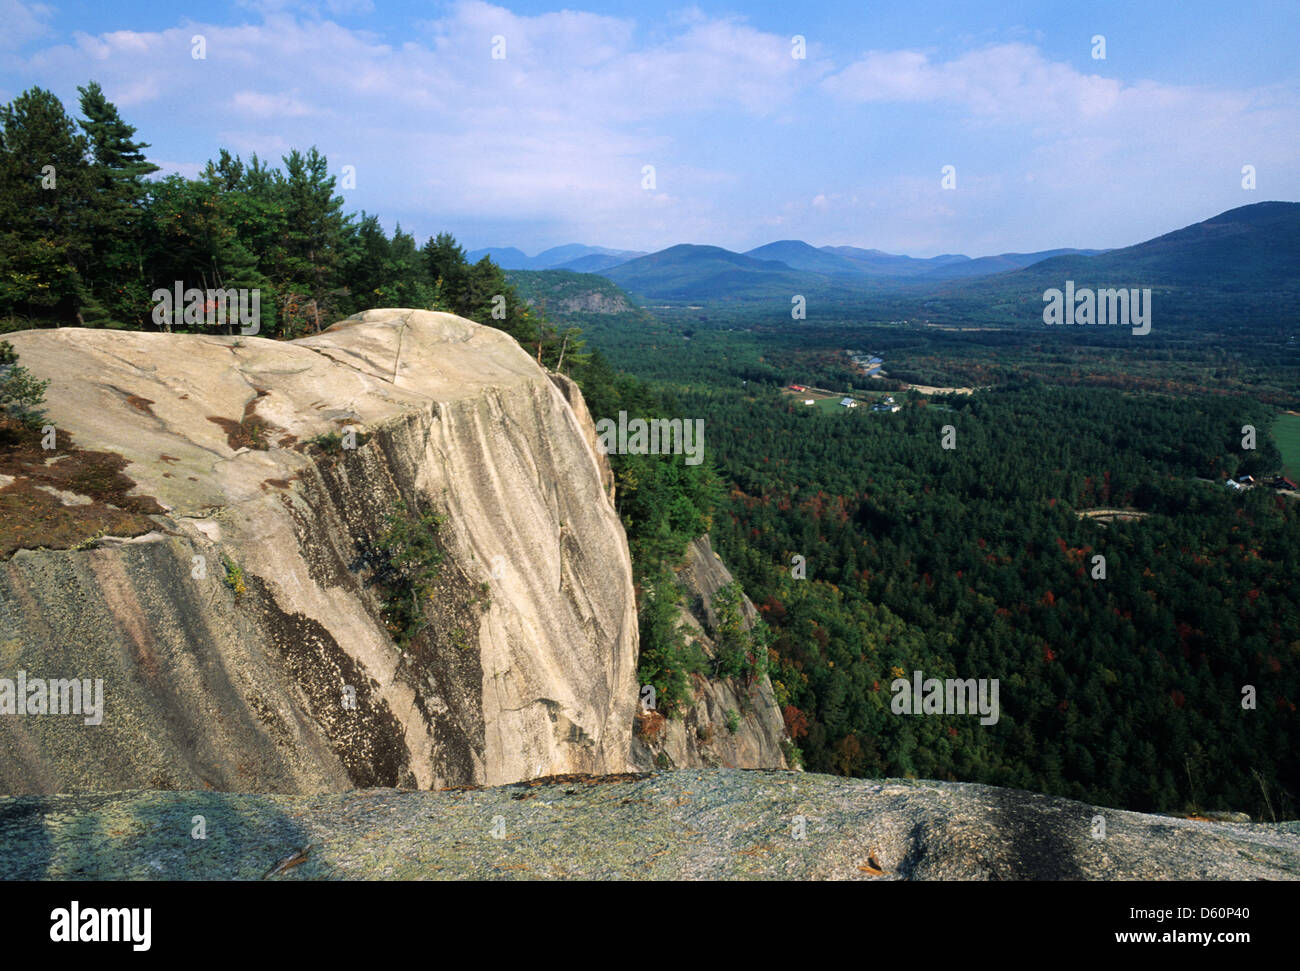 Elk281-1478 New Hampshire, White Mountains, Mt Washington Valley from Cathedral Ledge Cliffs - Stock Image